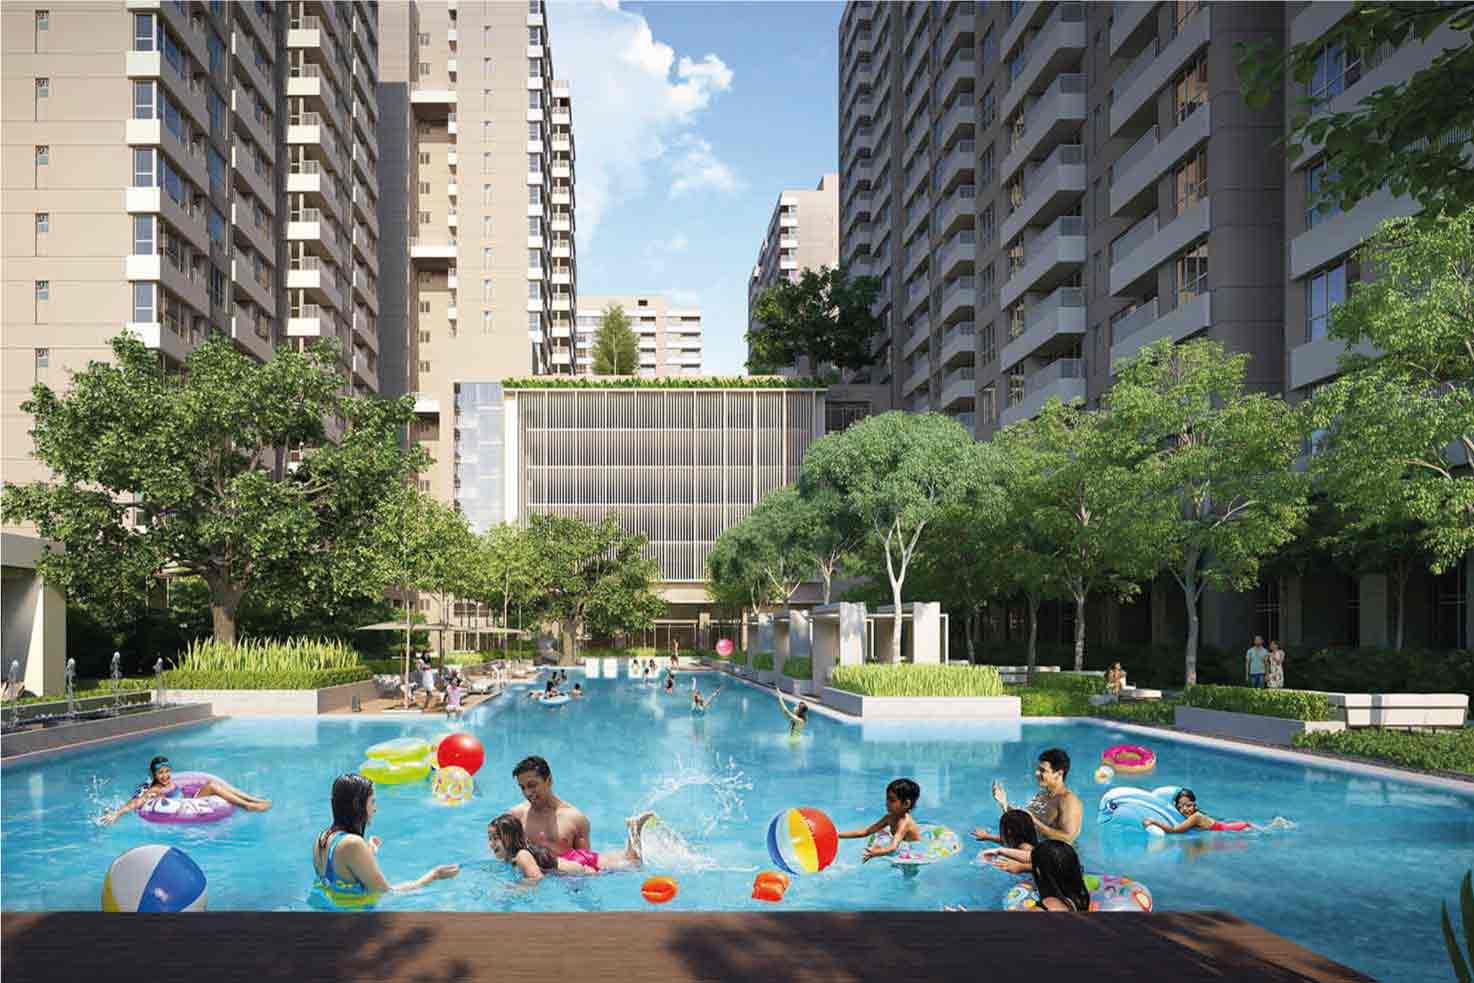 2BHK flats at New Town